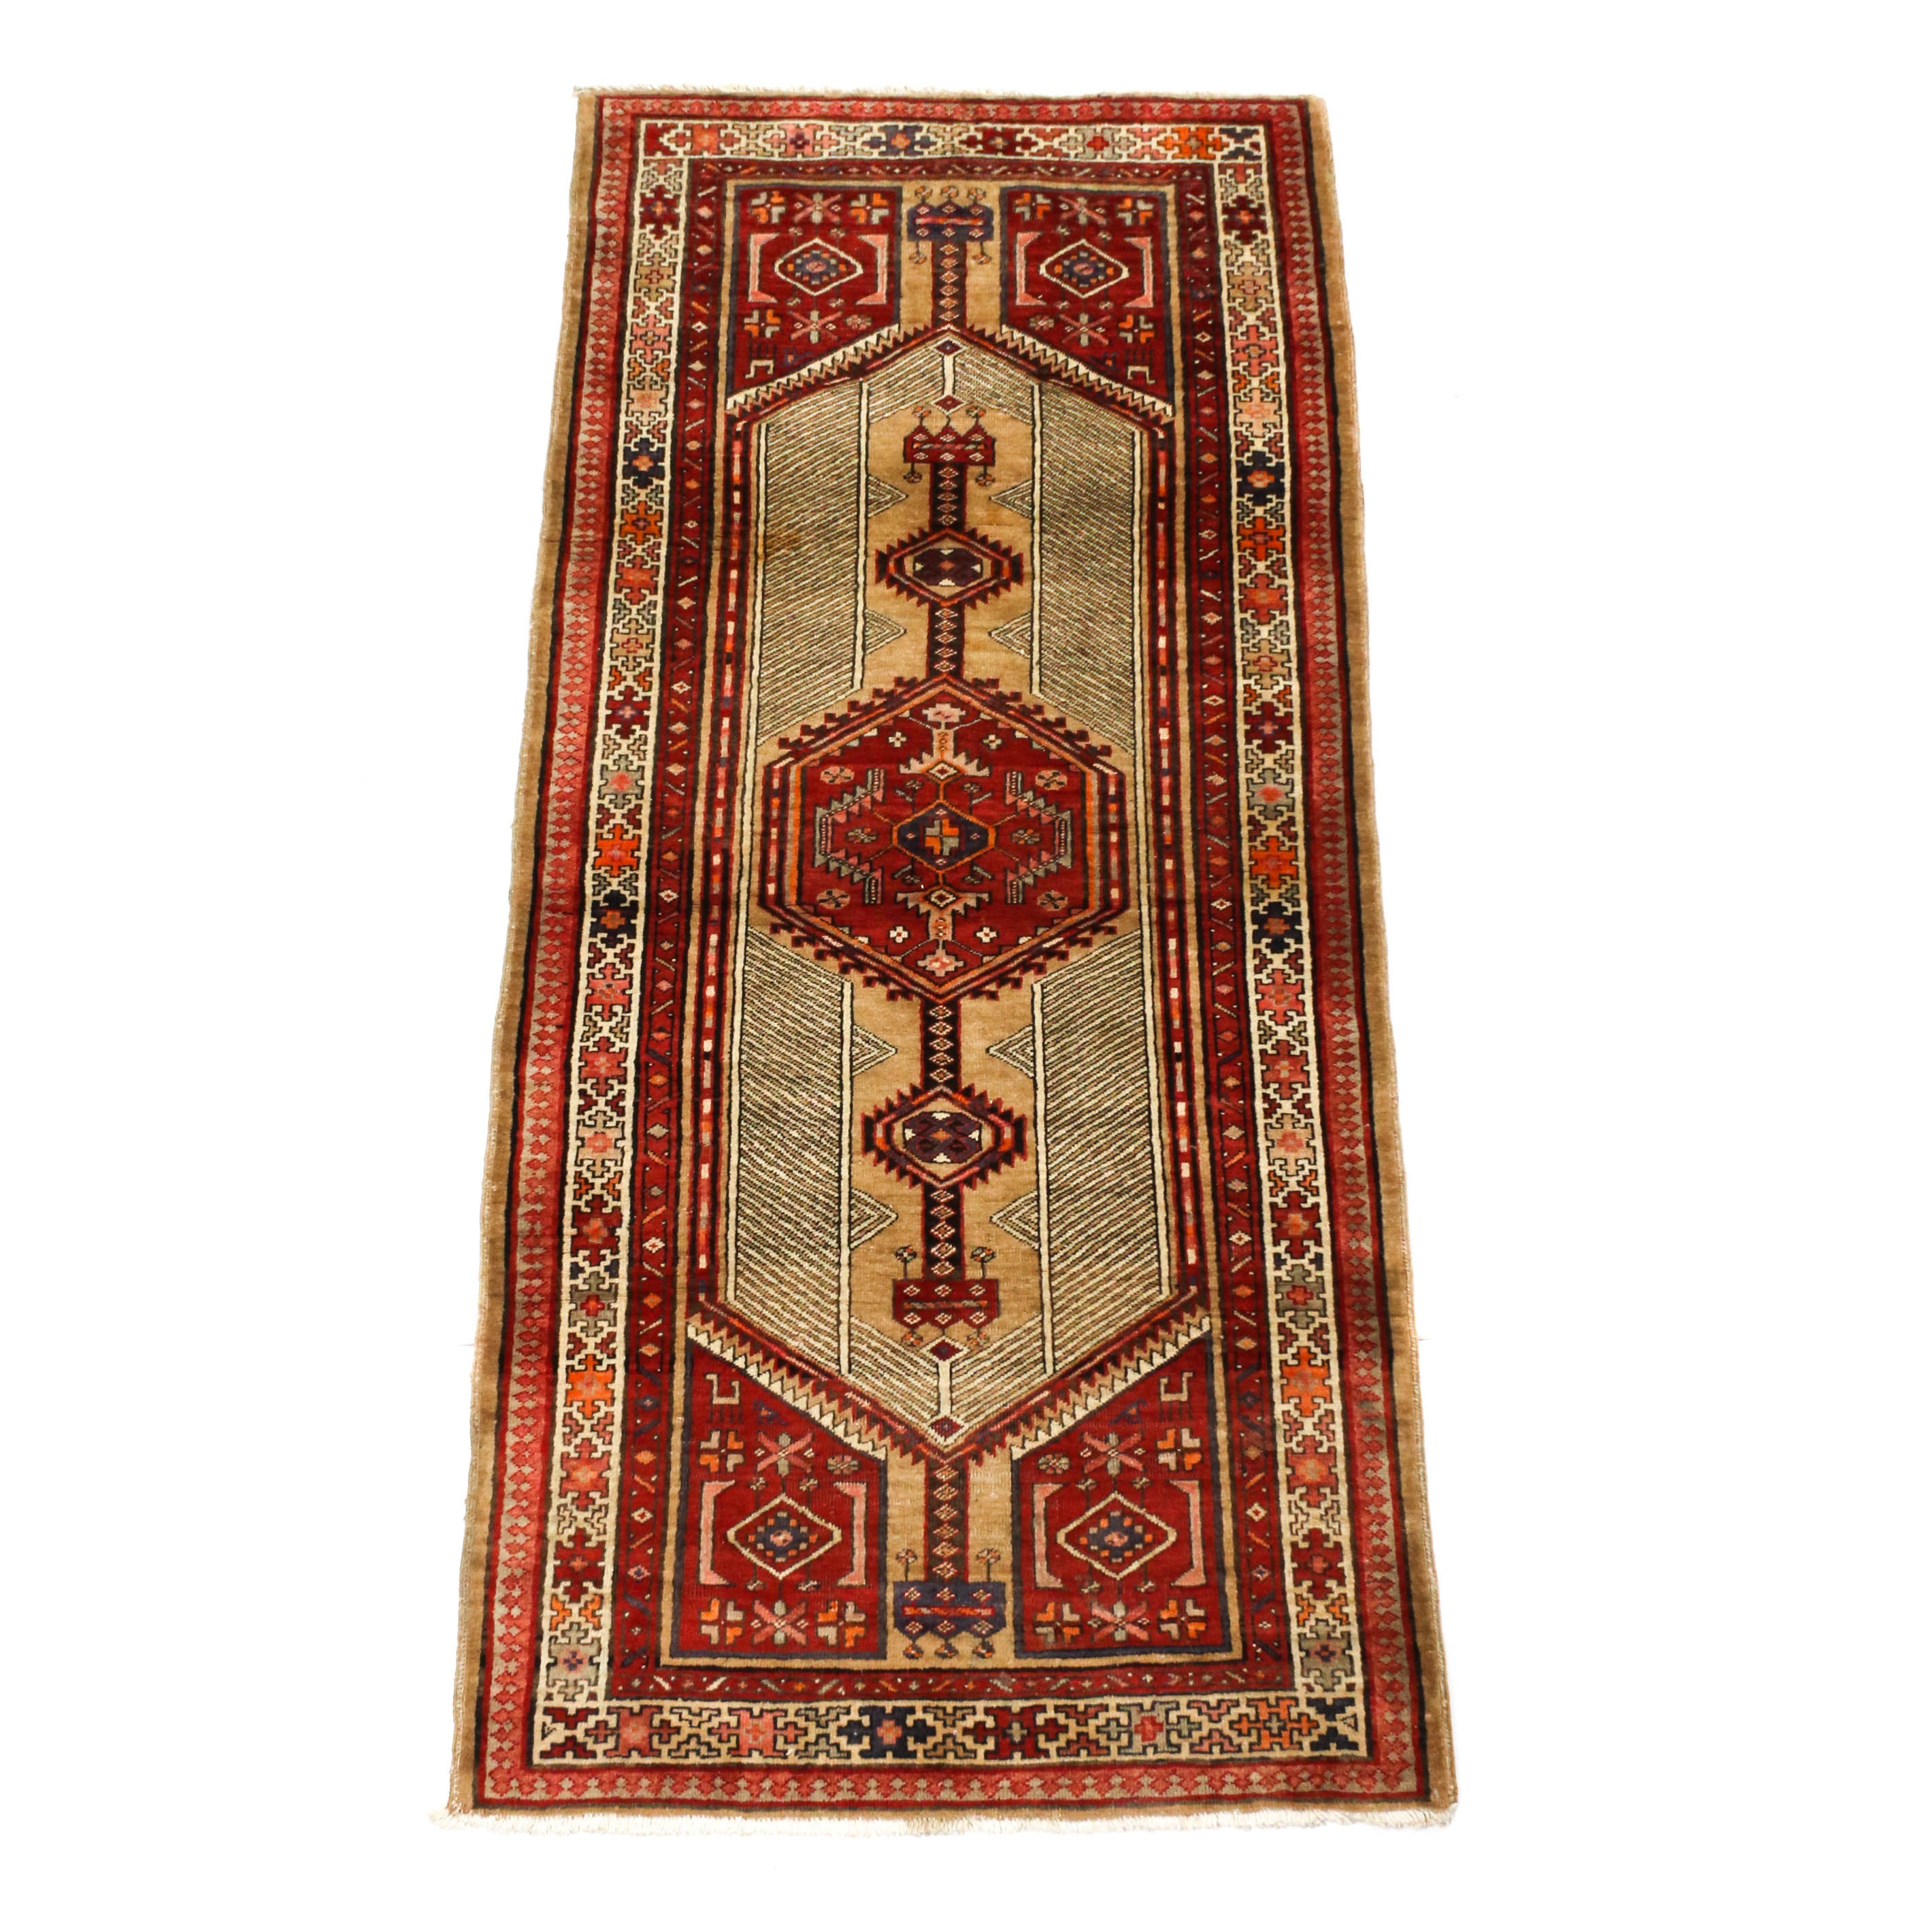 3'3 x 8'4 Hand-Knotted Persian Serab Long Rug, Circa 1930